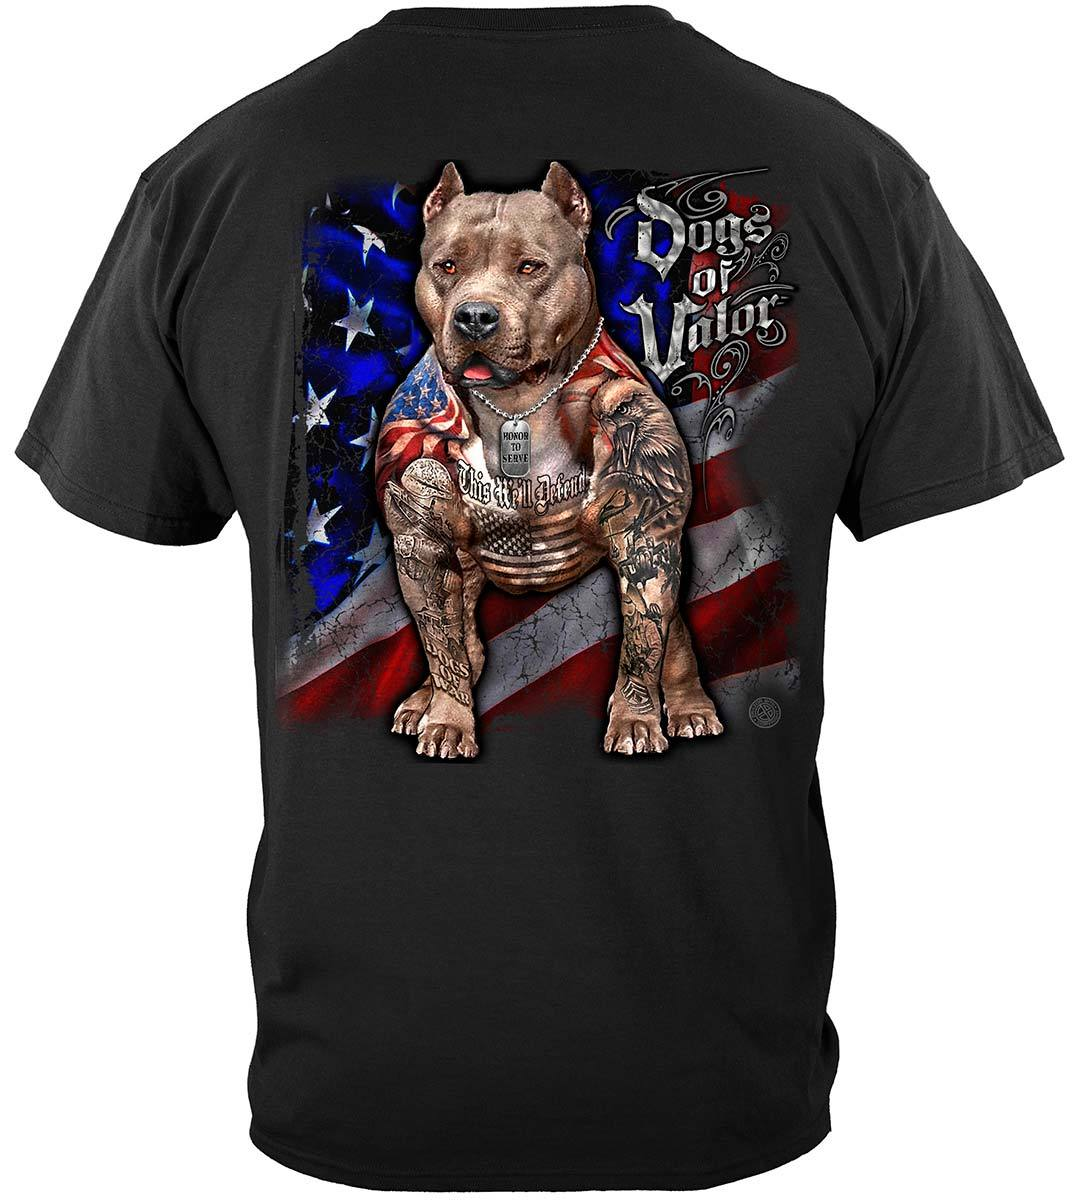 Dogs Of Valor This We'll Defend Pit Bull Premium T-Shirt